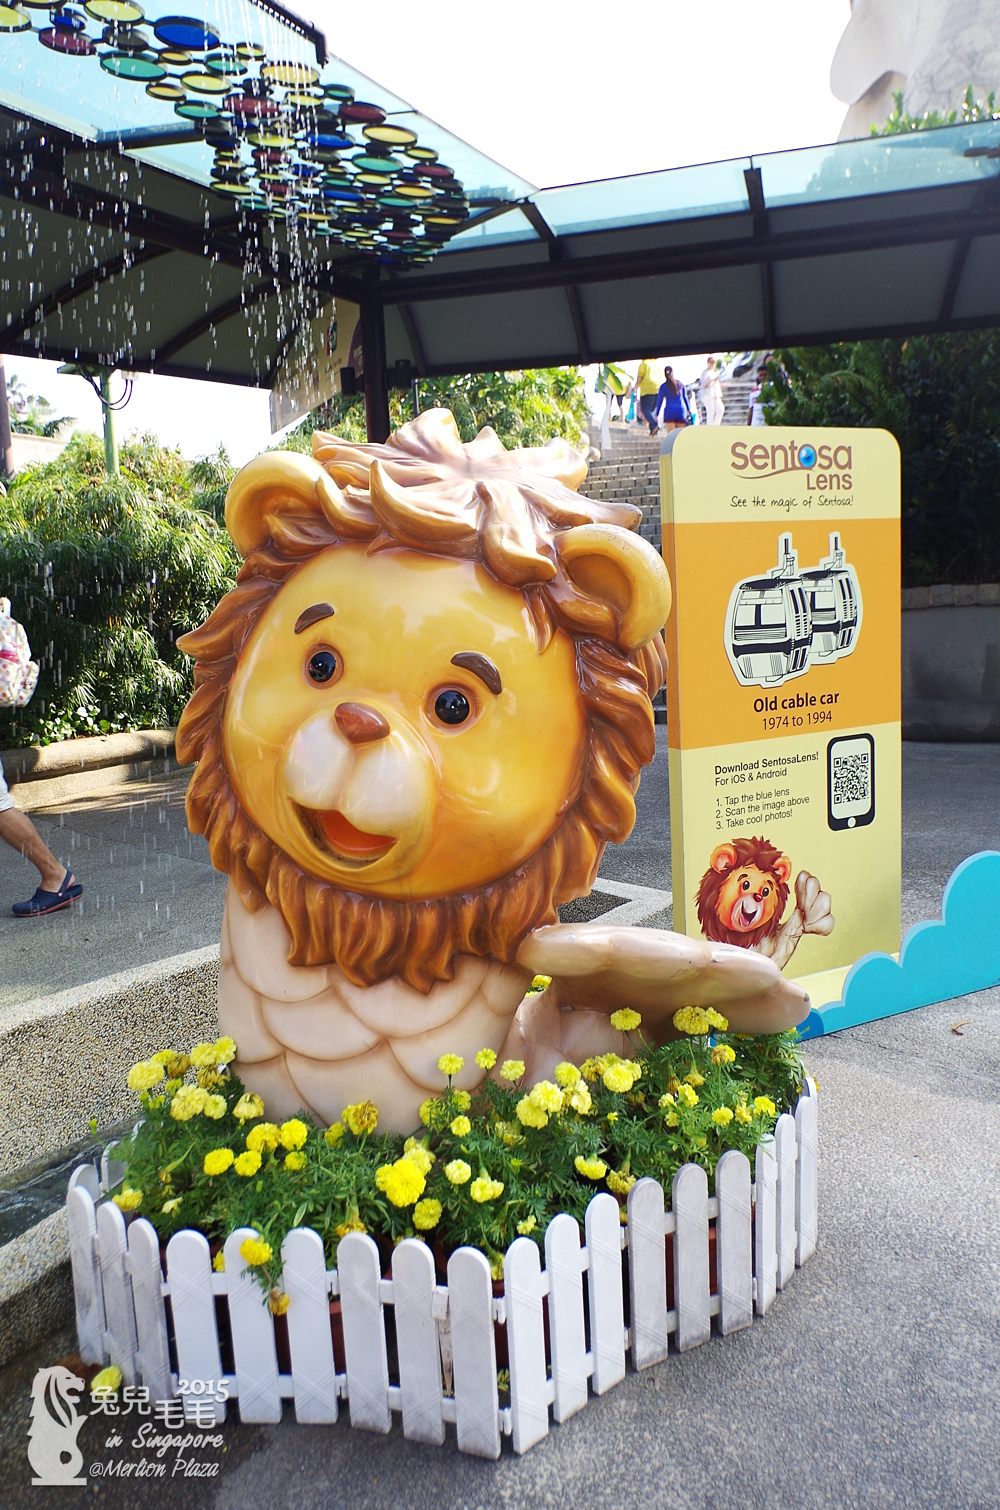 0215-Merlion Plaza-15